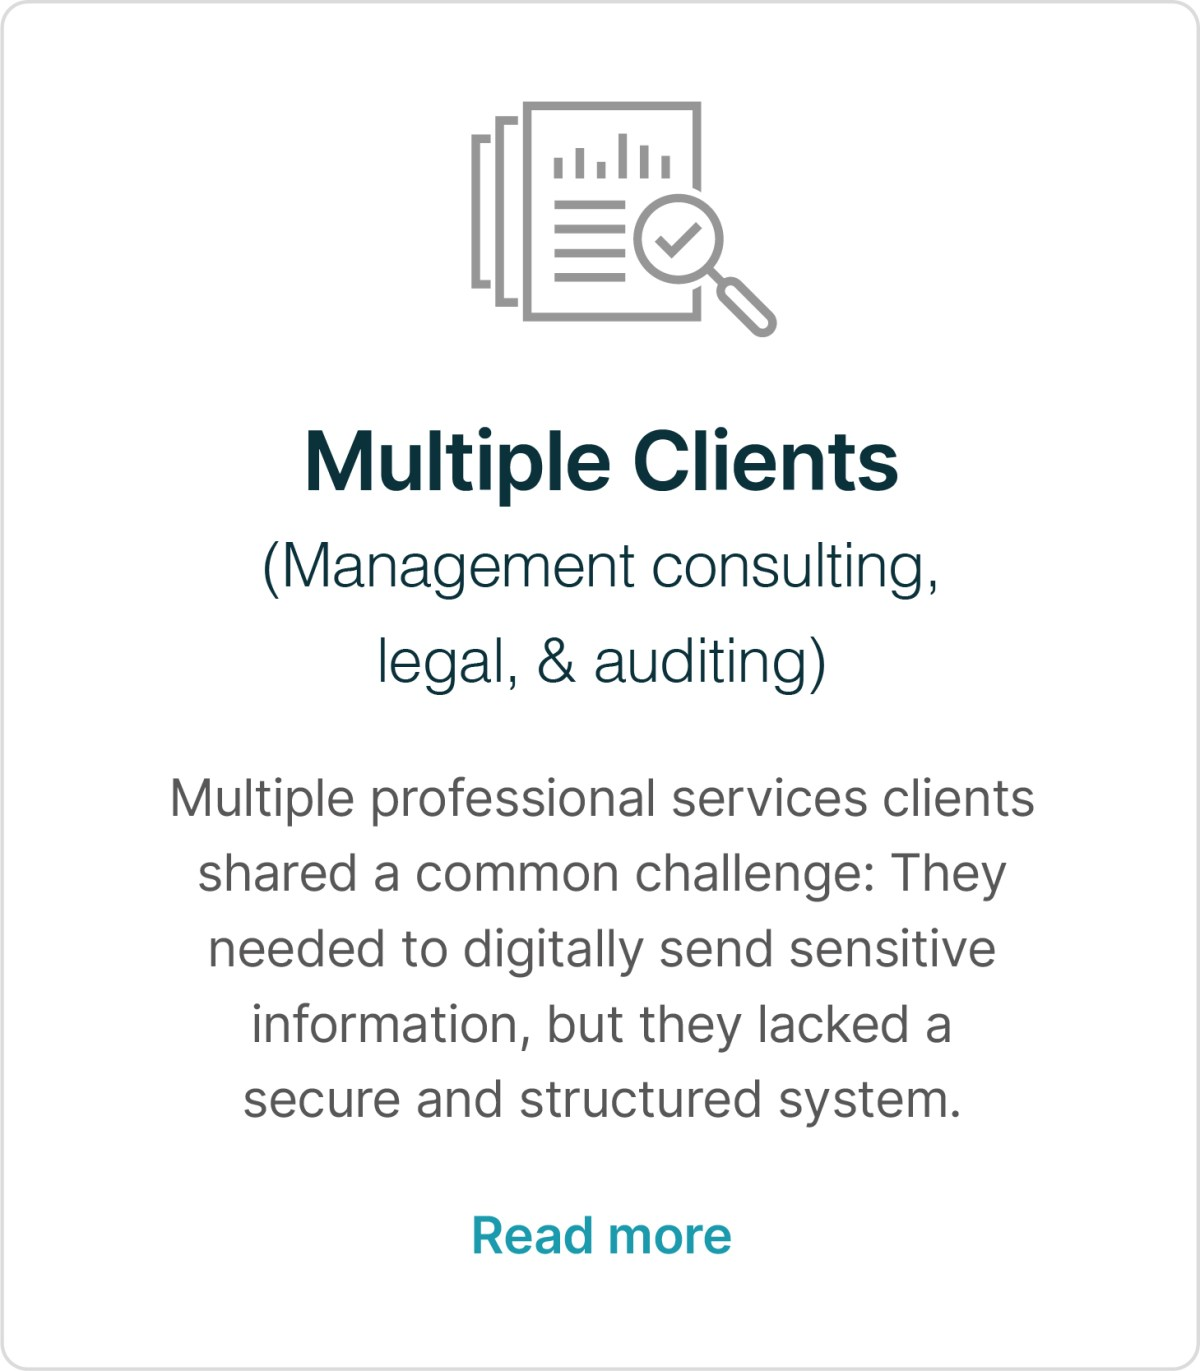 Multiple-Clients-ManagementConsulting-Legal-Auditing